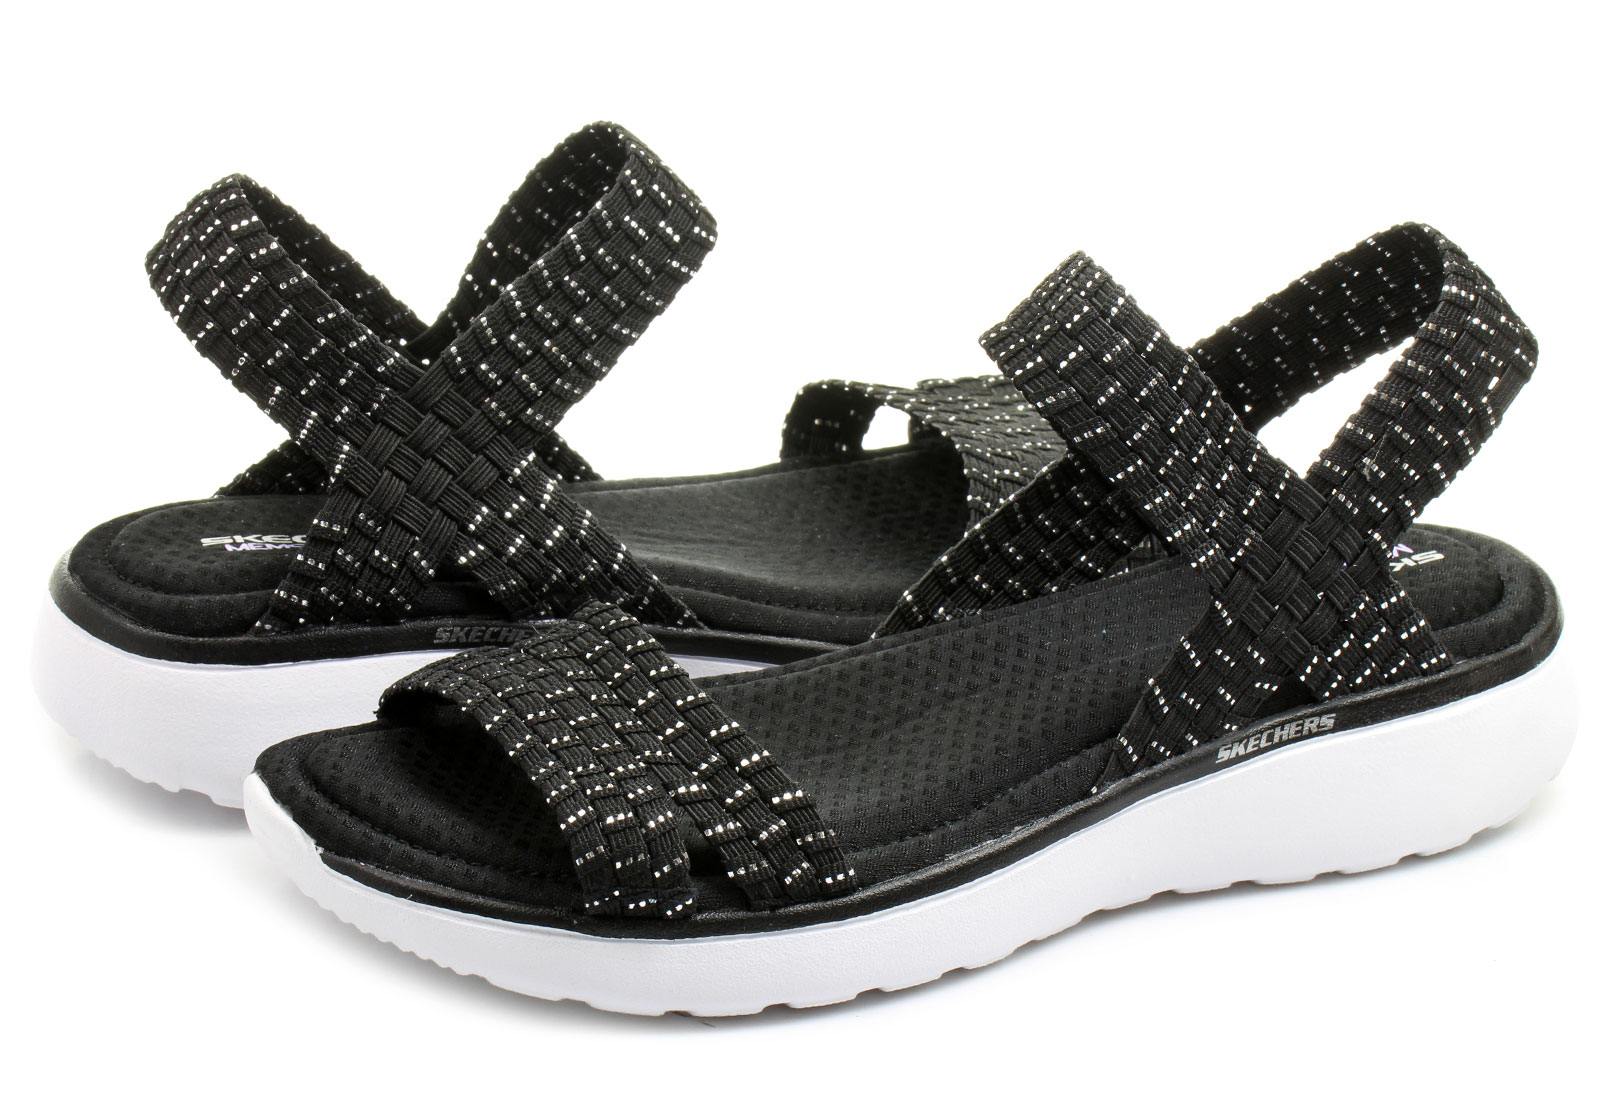 Skechers Sandals - Warped - 38596-bksl - Online Shop For Sneakers Shoes And Boots